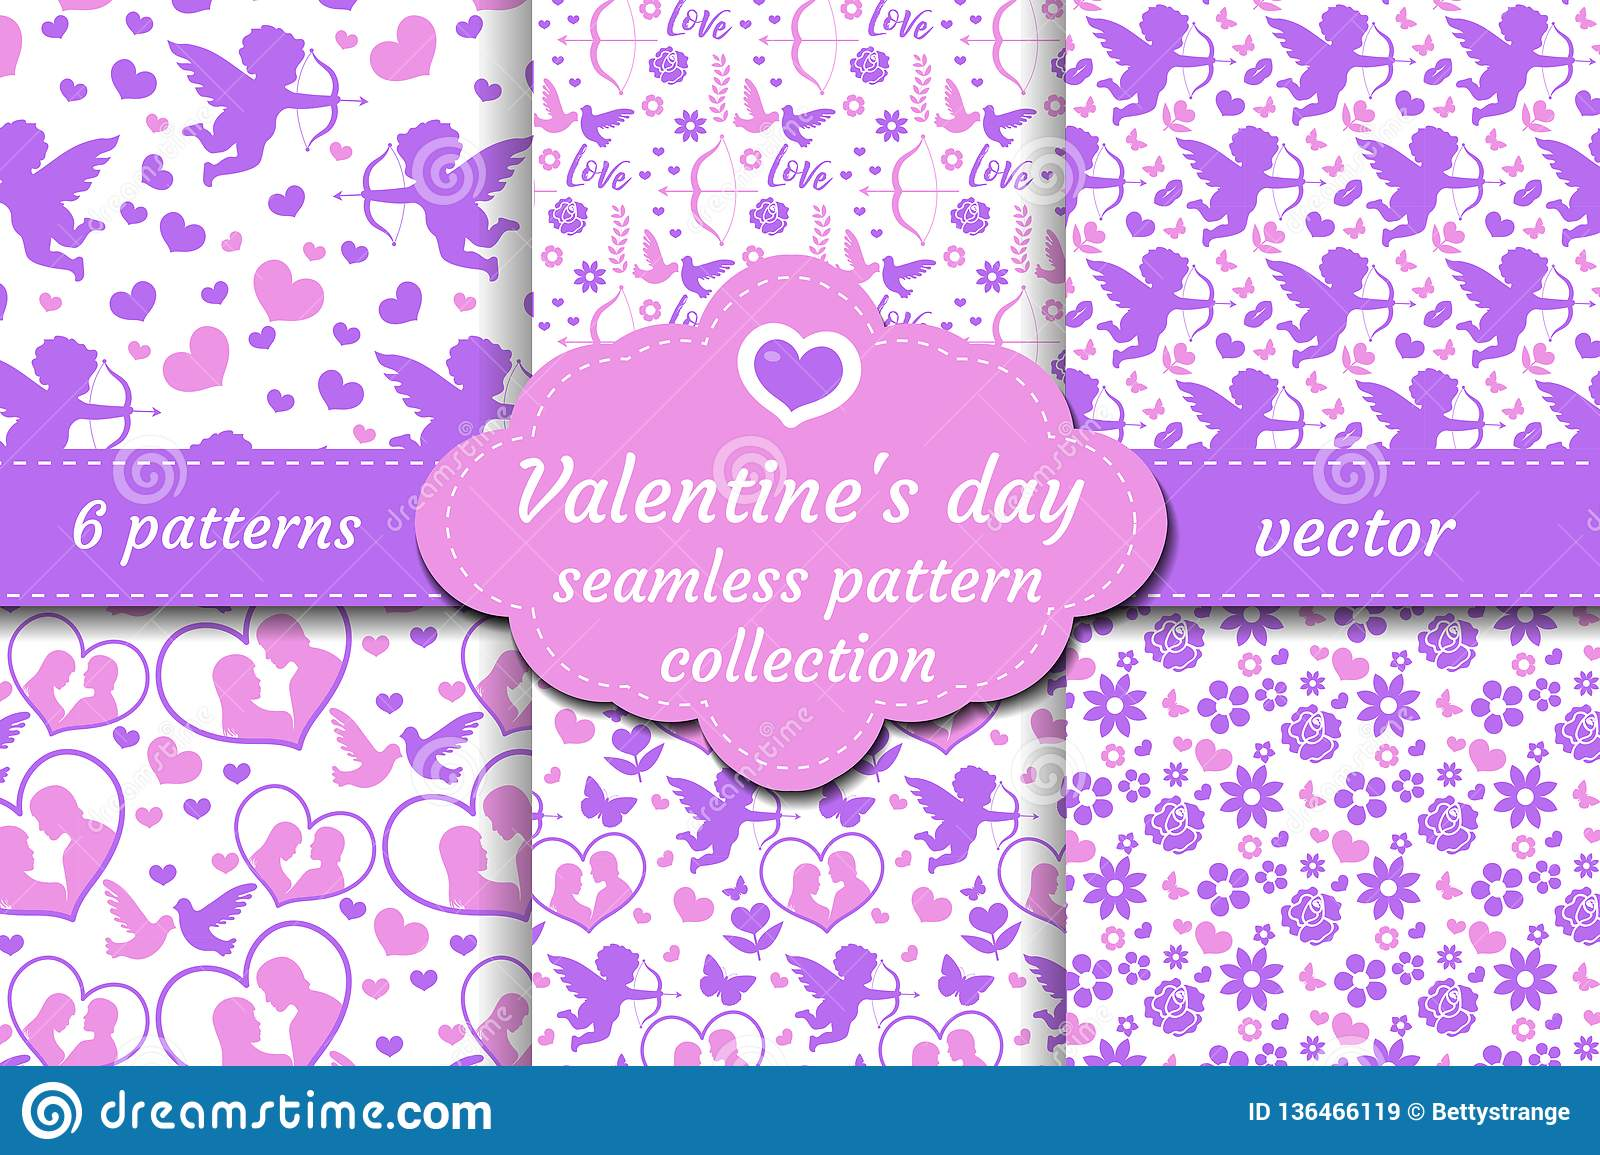 Happy Valentine s Day seamless pattern set. Collection Cute romantic love endless background. Cupid, heart, flowers